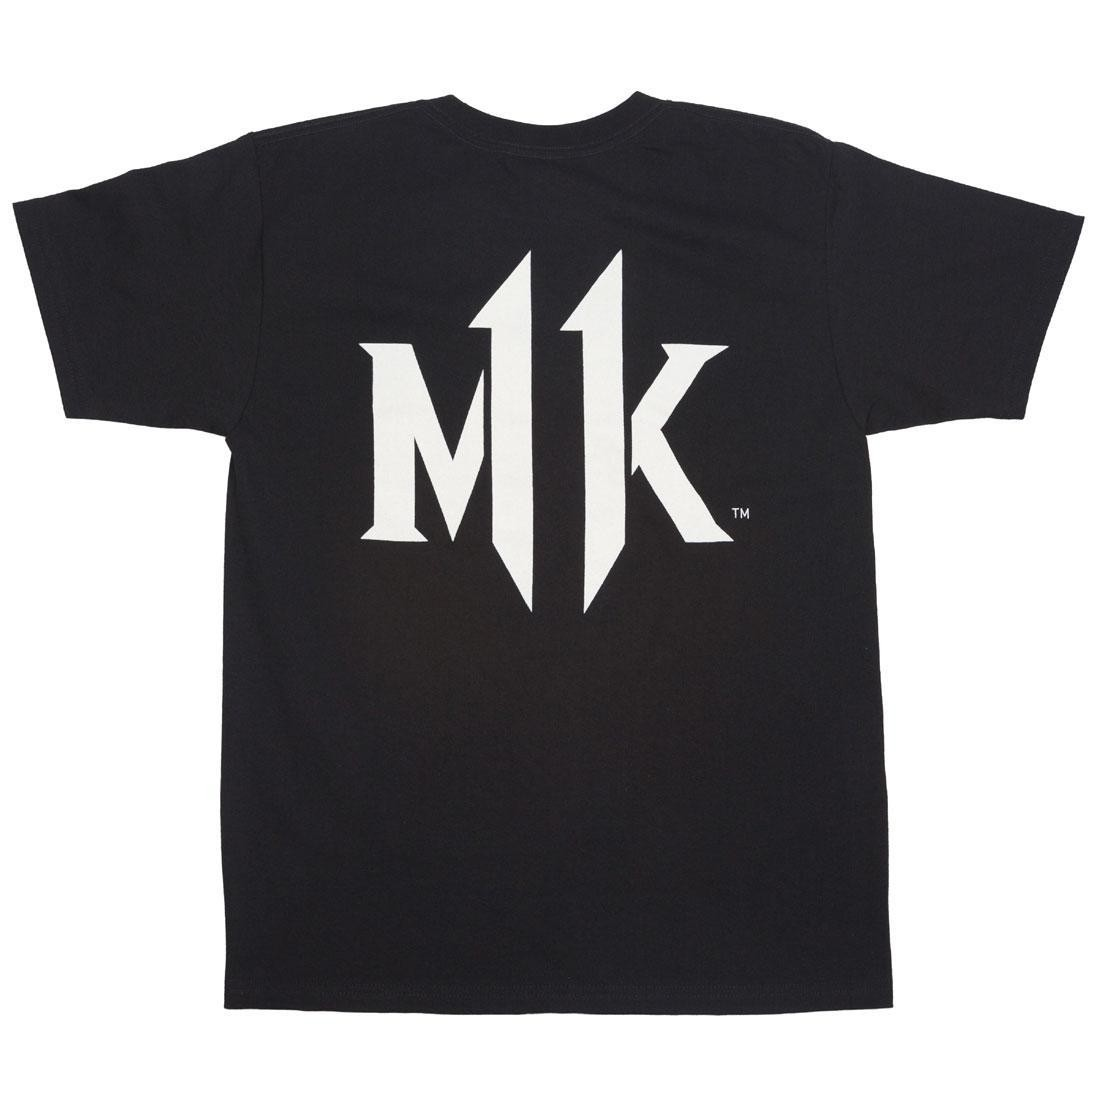 BAIT x Mortal Kombat 11 Men Fatality Tee (black)